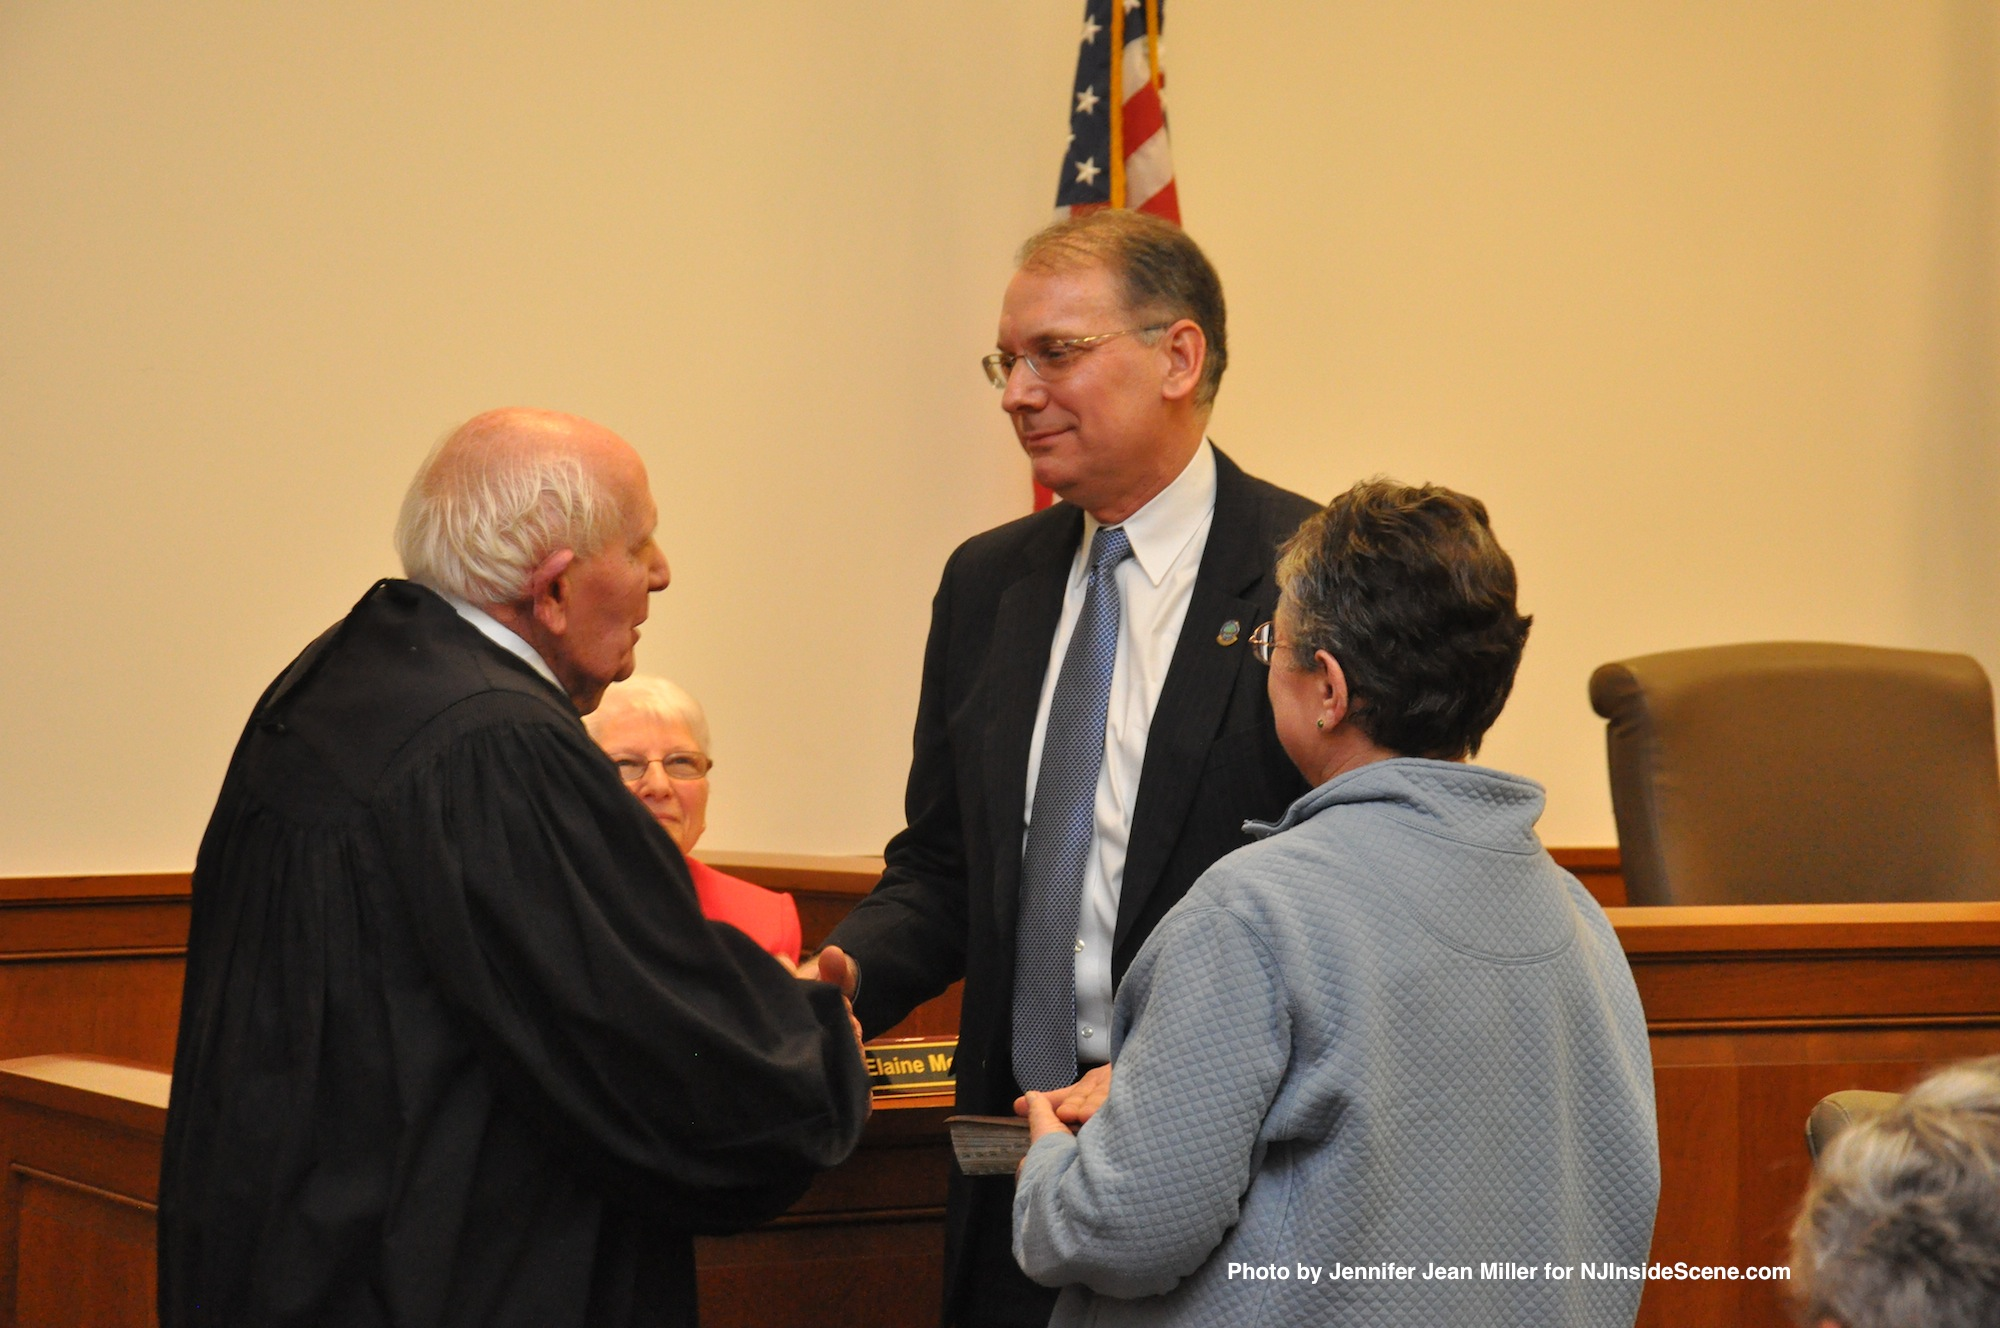 Dennis Mudrick, as he is sworn in as Deputy Director of the Sussex County Board of Chosen Freeholders, with his mother, Ann, and Judge Frederic Weber.